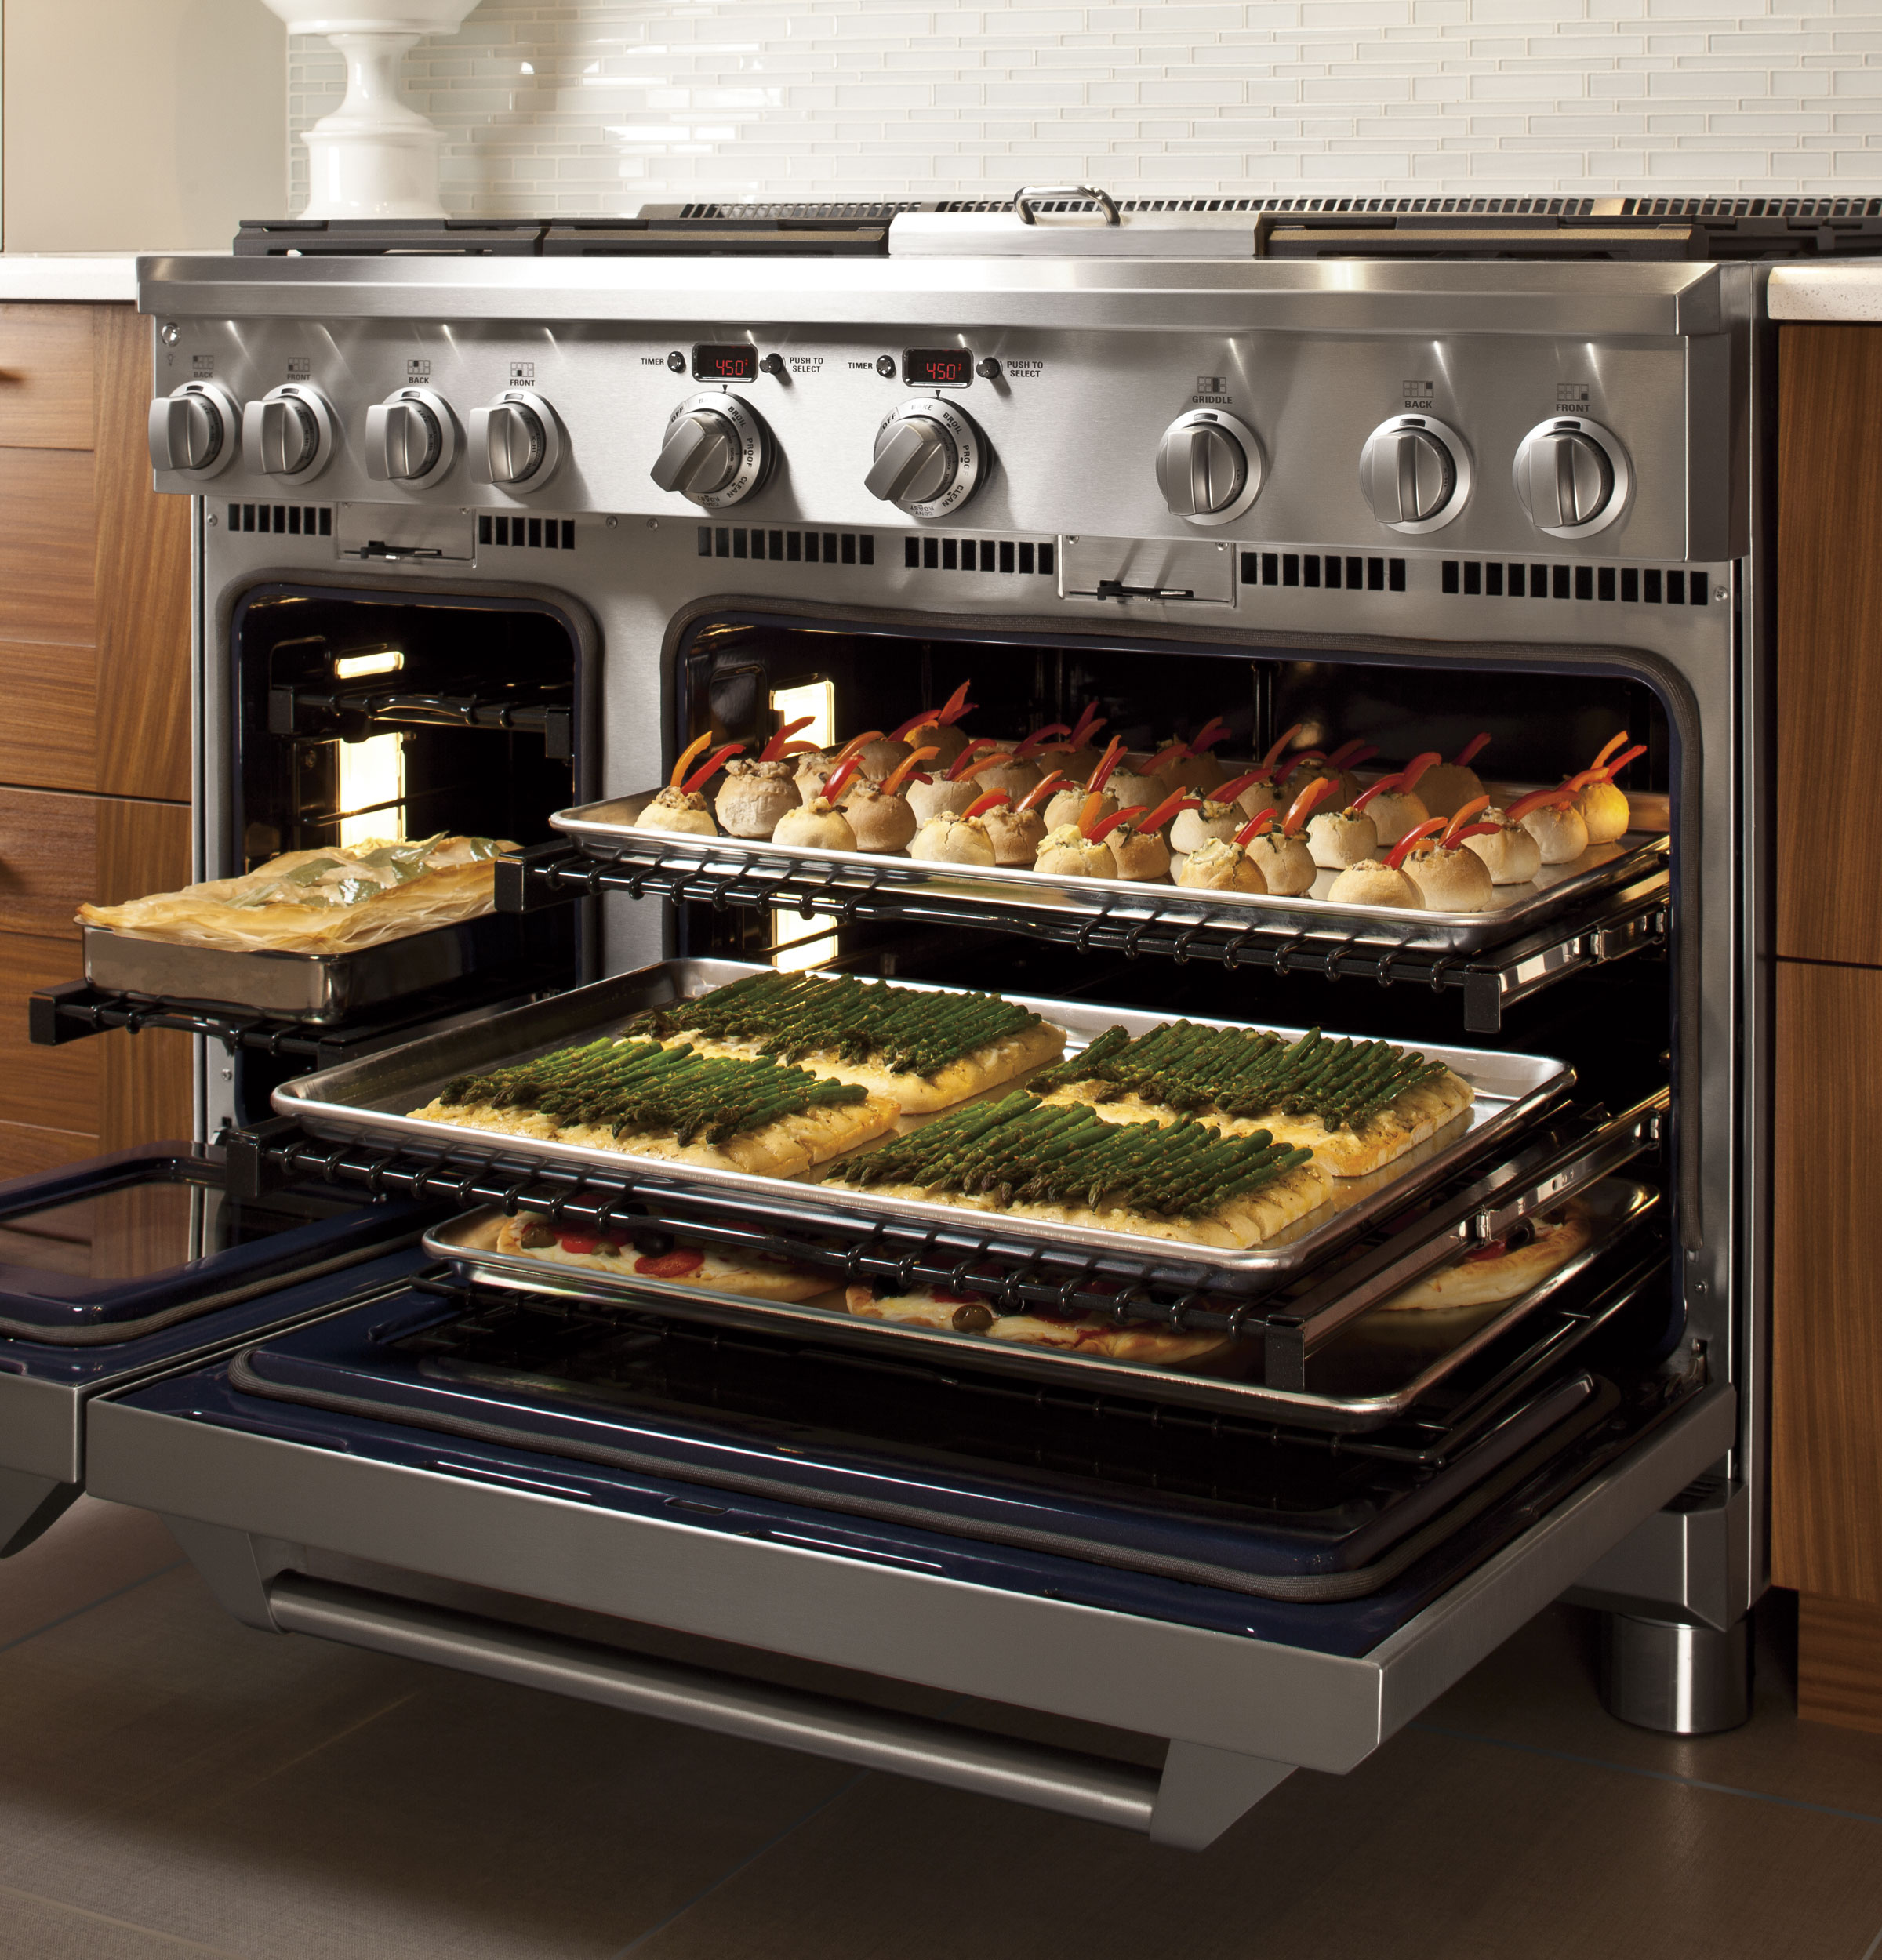 Ge Monogram Series 48 All Gas Professional Range With 4 Burners Grill And Griddle Zgp484ngrss Lewis Liances In Trinidad The Building Source